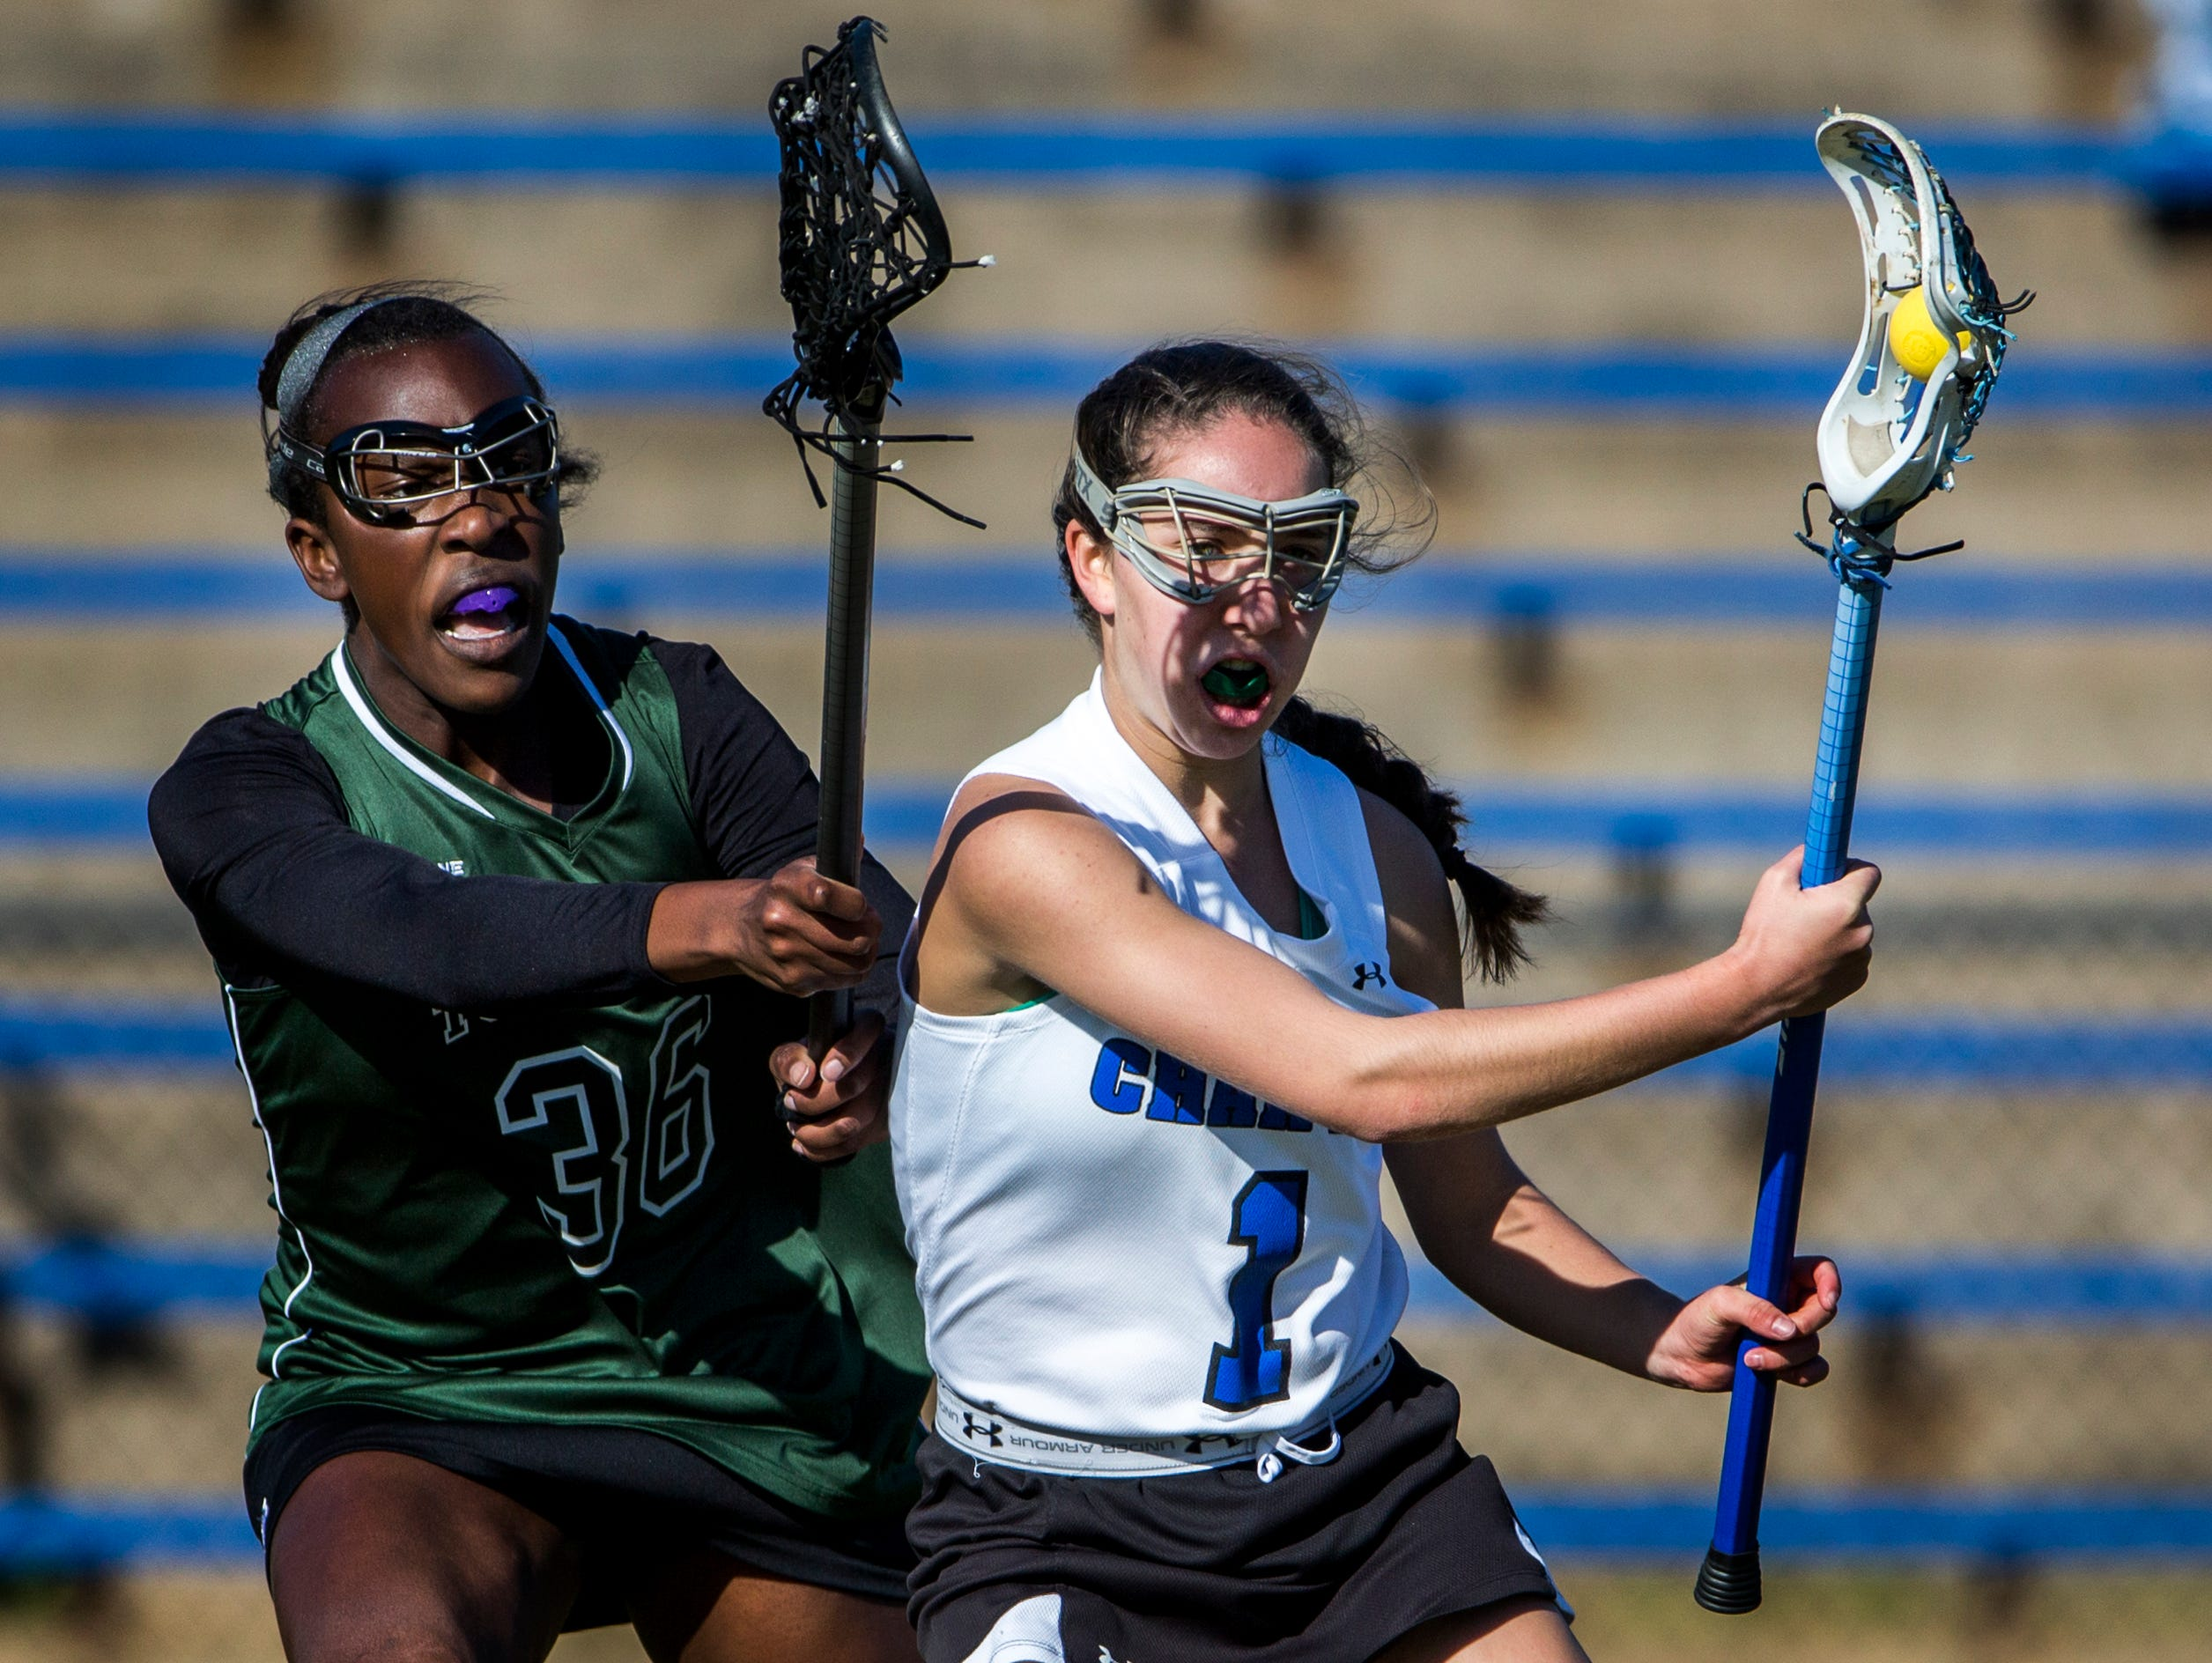 Charter of Wilmington's Michelle Shulkov (1) works around Tower Hill's Jade Olurin during the Force's 10-9 win on March 29. Charter moved into this week's girls lacrosse rankings at No. 3.